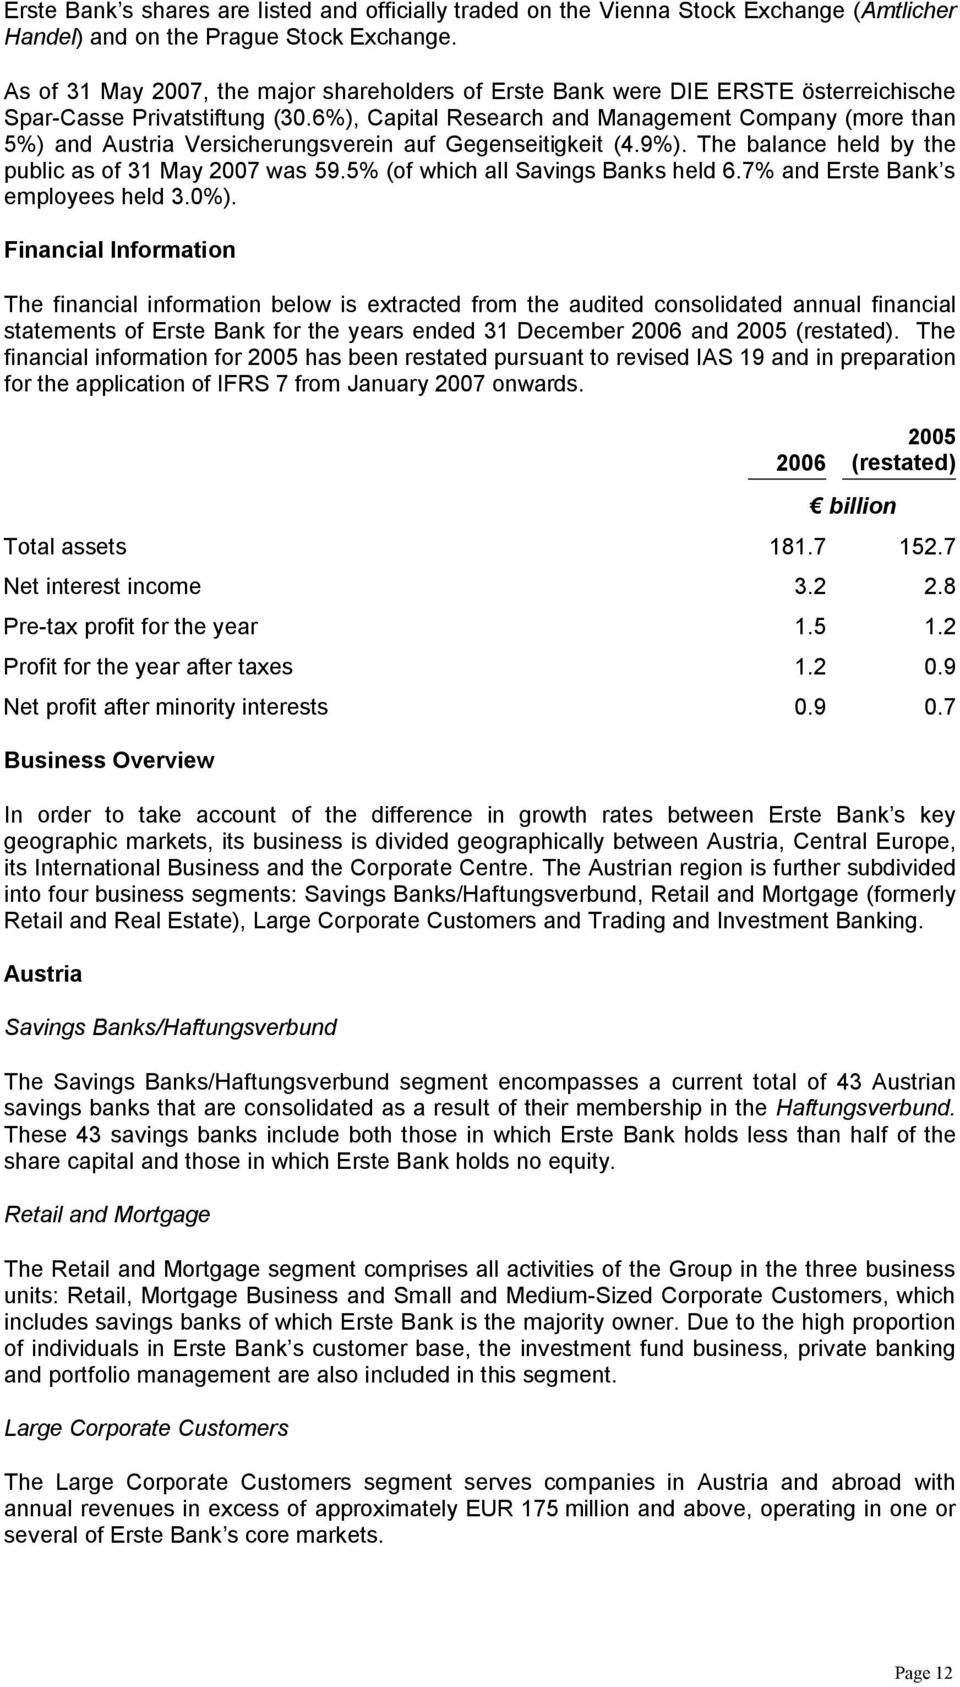 6%), Capital Research and Management Company (more than 5%) and Austria Versicherungsverein auf Gegenseitigkeit (4.9%). The balance held by the public as of 31 May 2007 was 59.